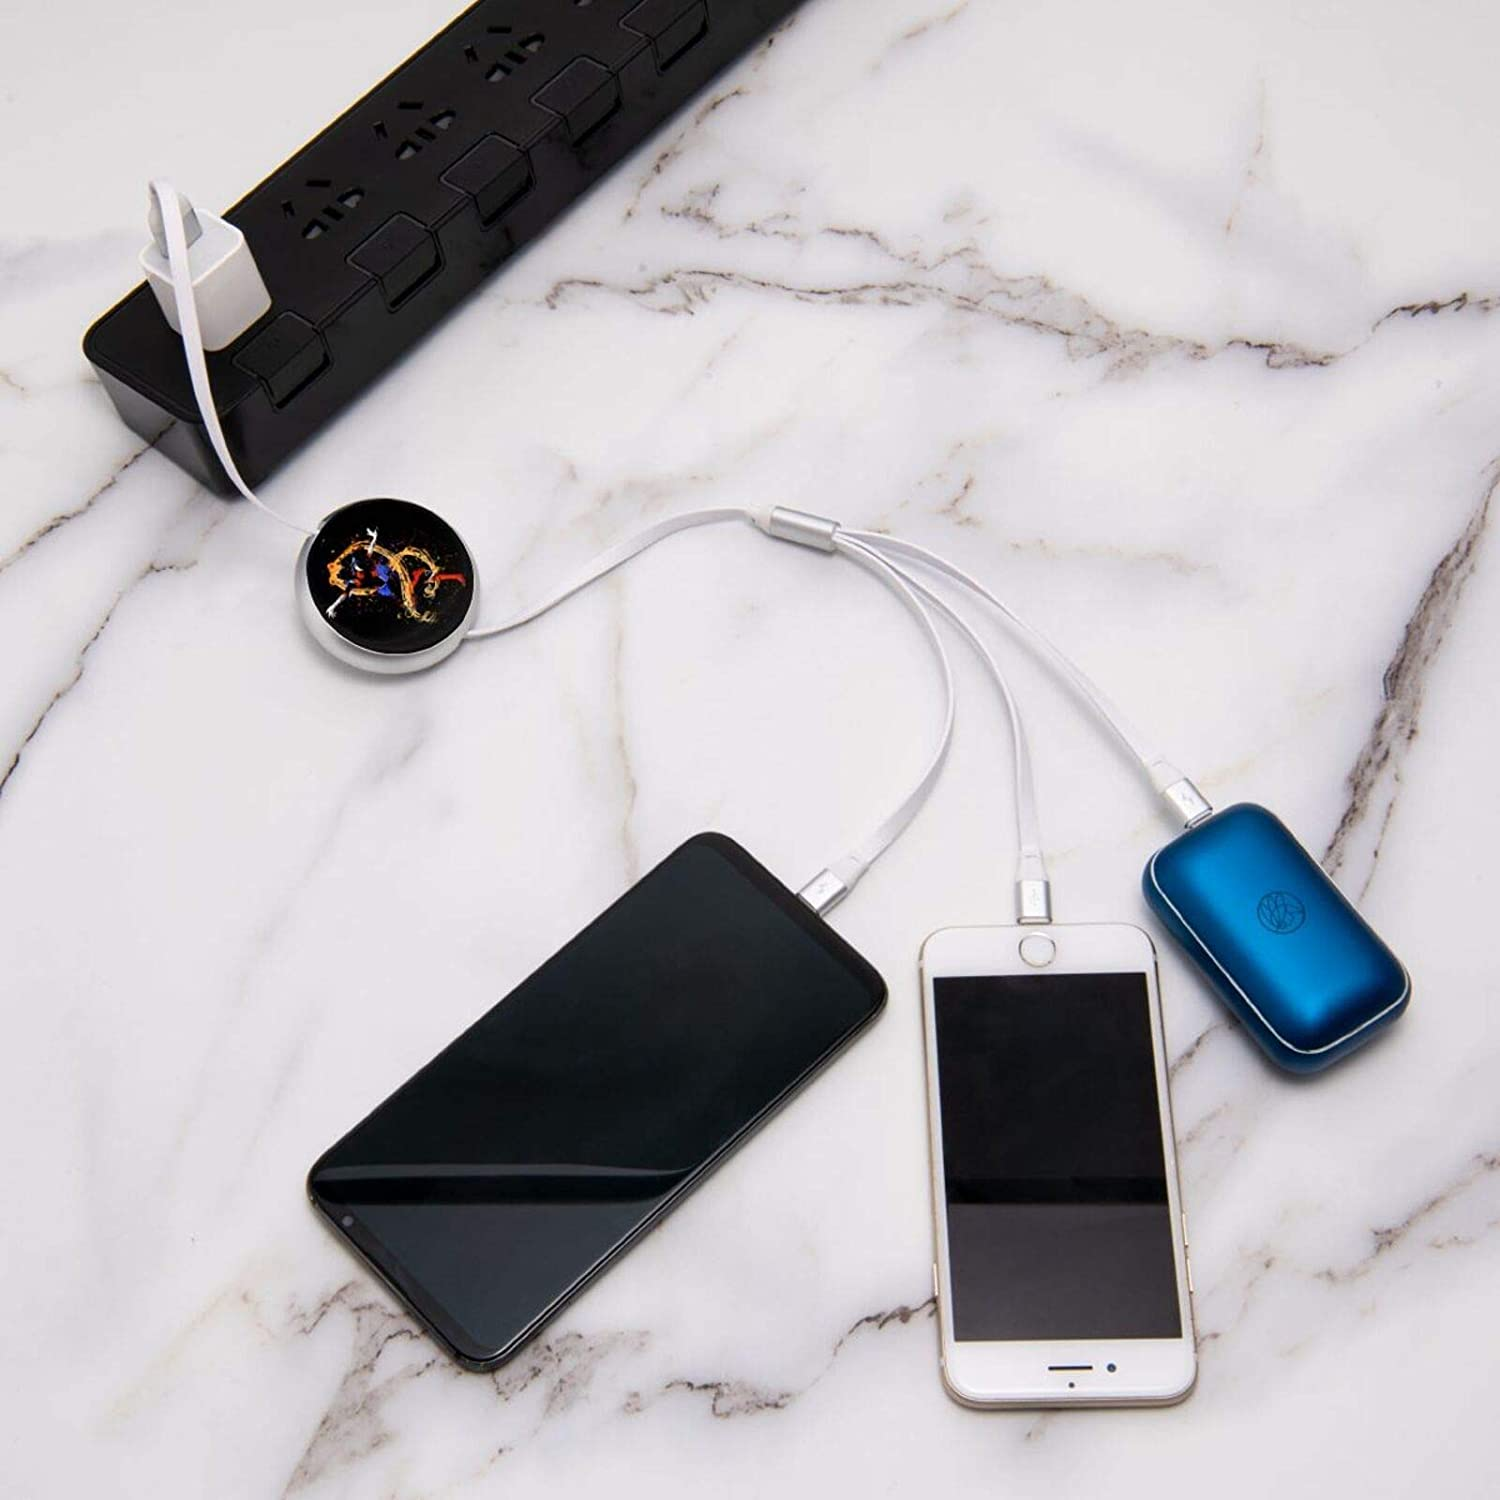 Wolf Princess Mononoke 3 in 1 Retractable Multi Charging Cable 3.0a Fast Charger Cord with Phone//Type C//Micro USB Charge Port Adapter Compatible with Cell Phones Tablets and More